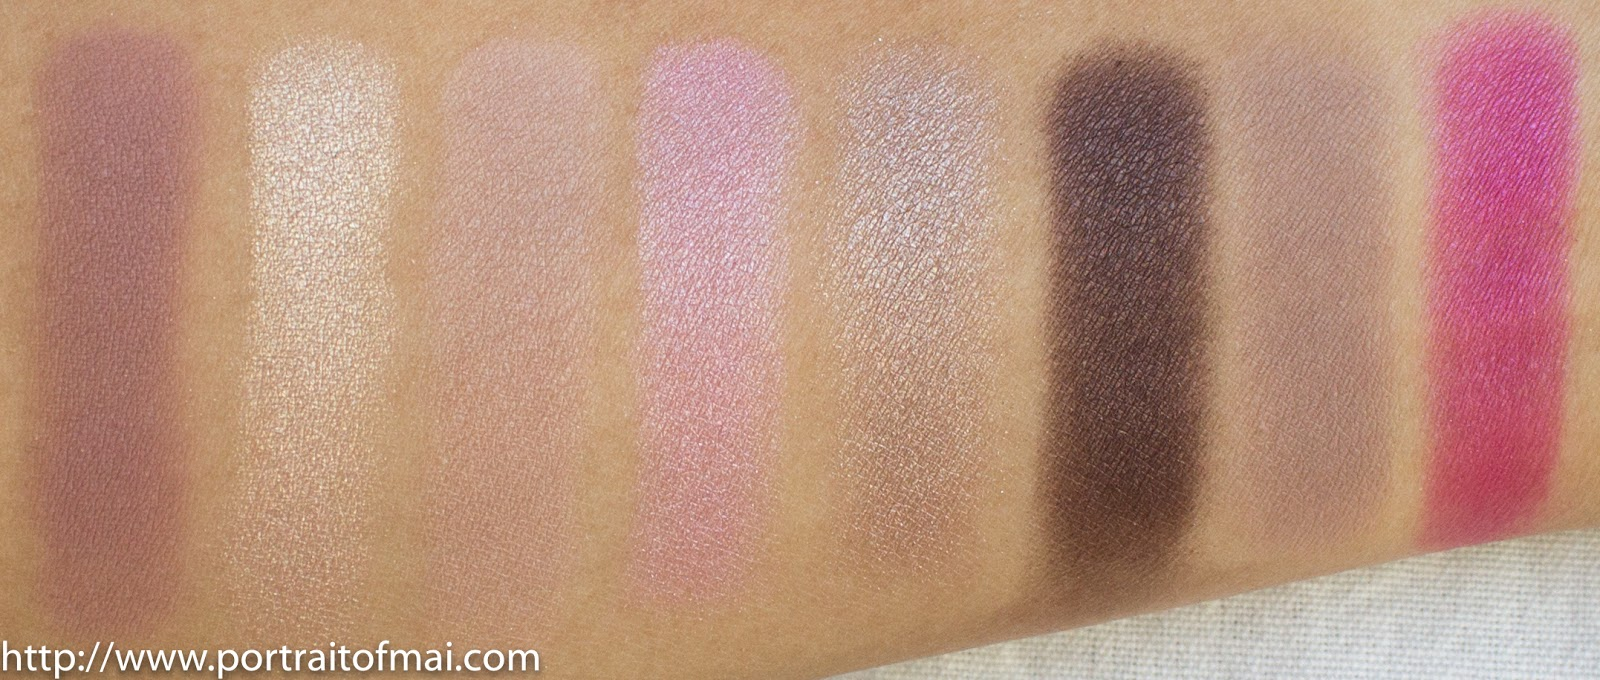 Too Faced Chocolate Bon Bons Palette Swatches